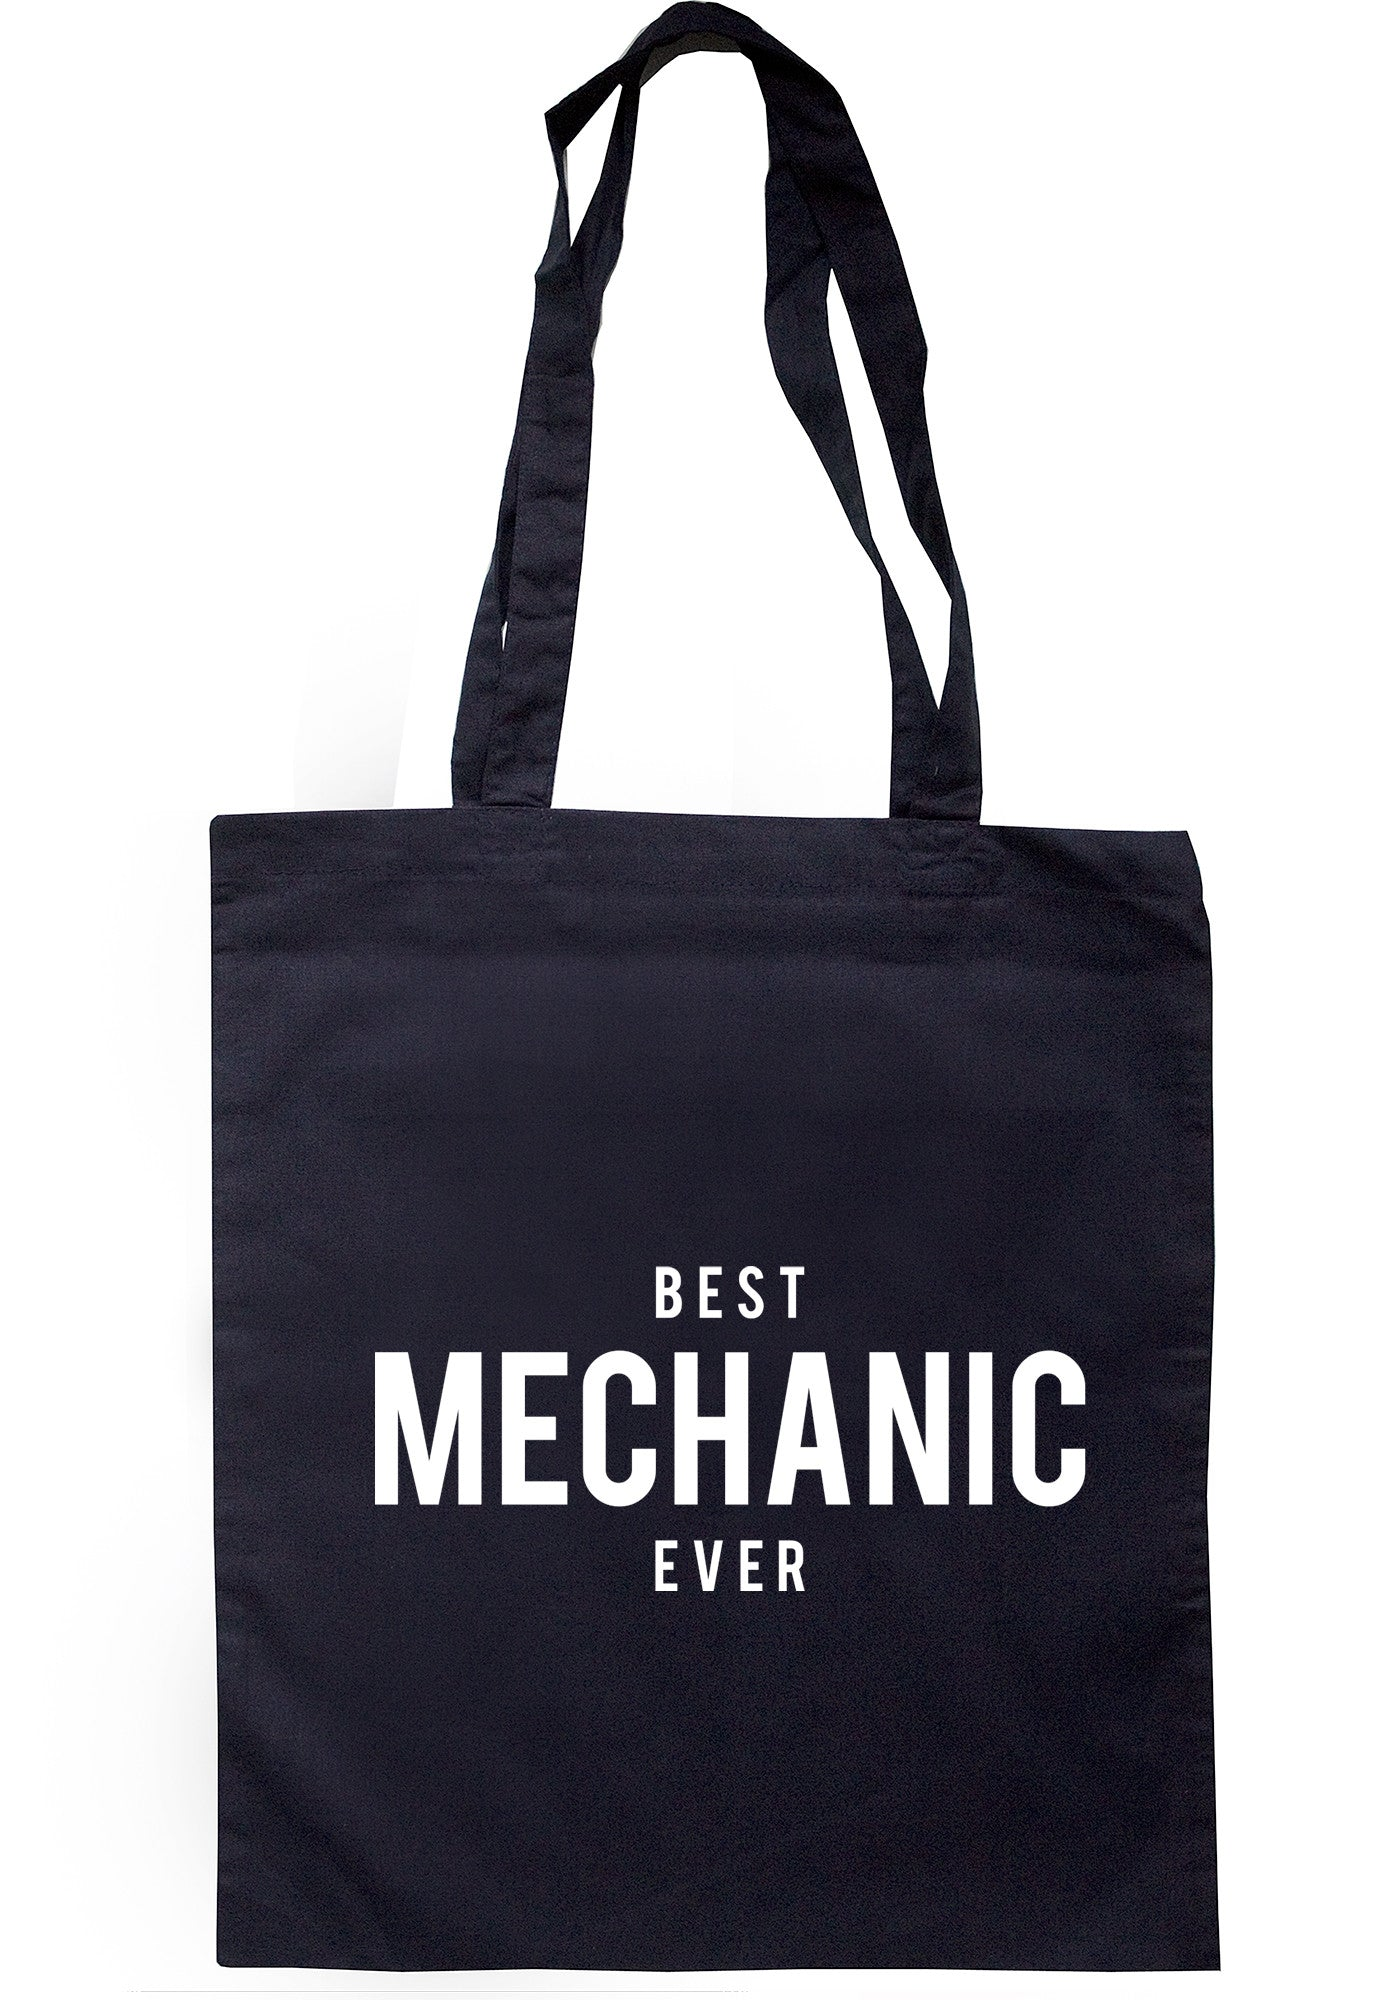 Best Mechanic Ever Tote Bag TB1300